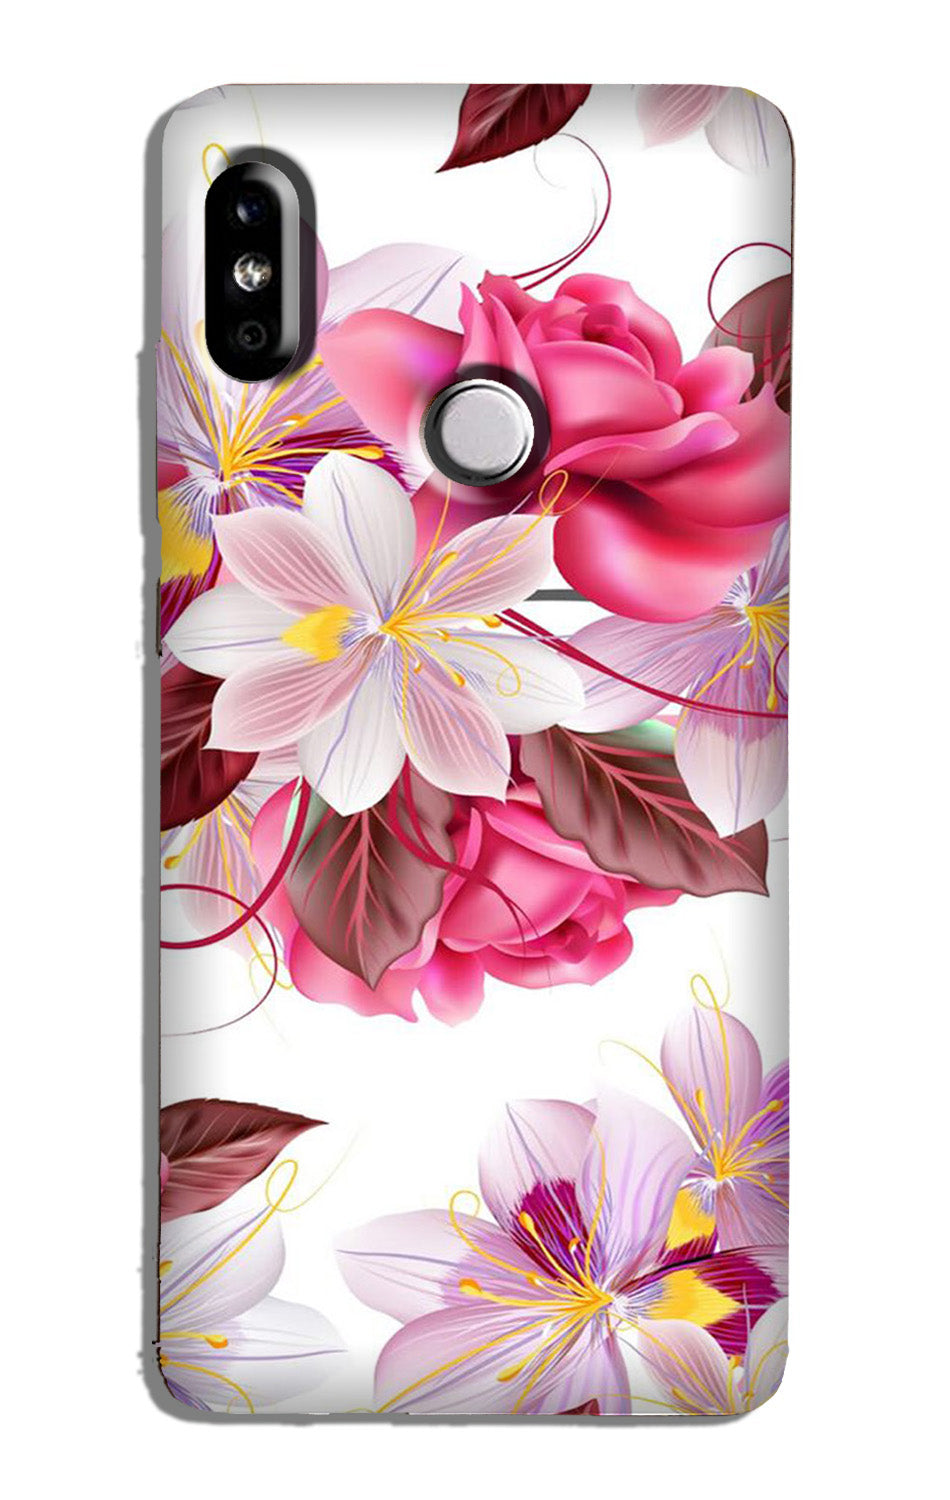 Beautiful flowers Case for Redmi 6 Pro